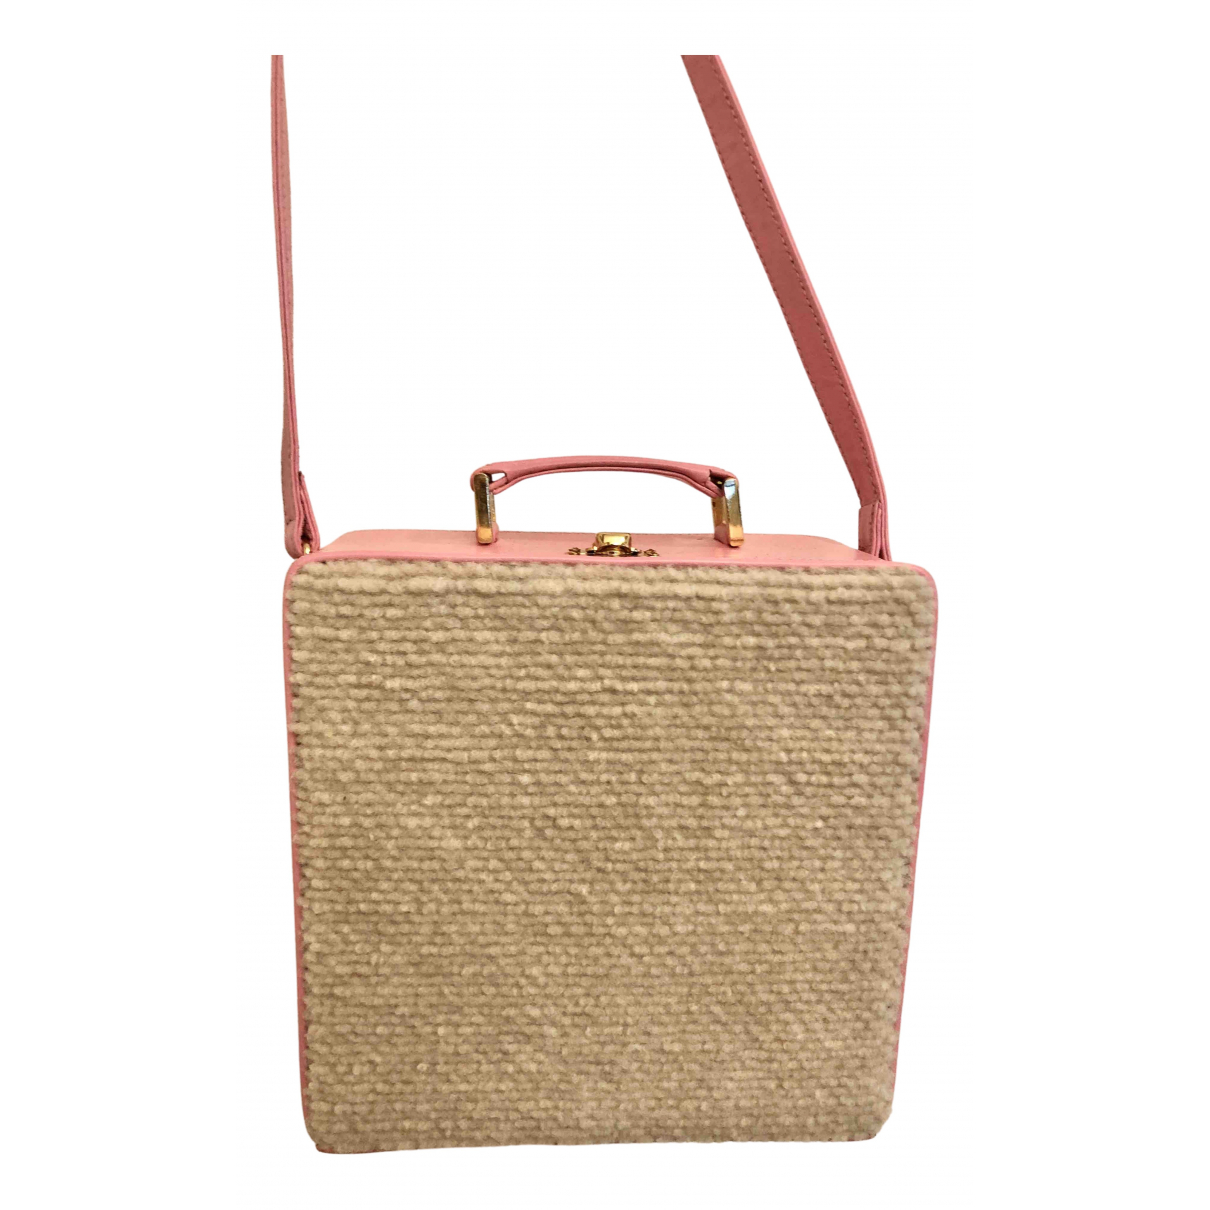 Olympia Le Tan \N Handtasche in  Rosa Wolle